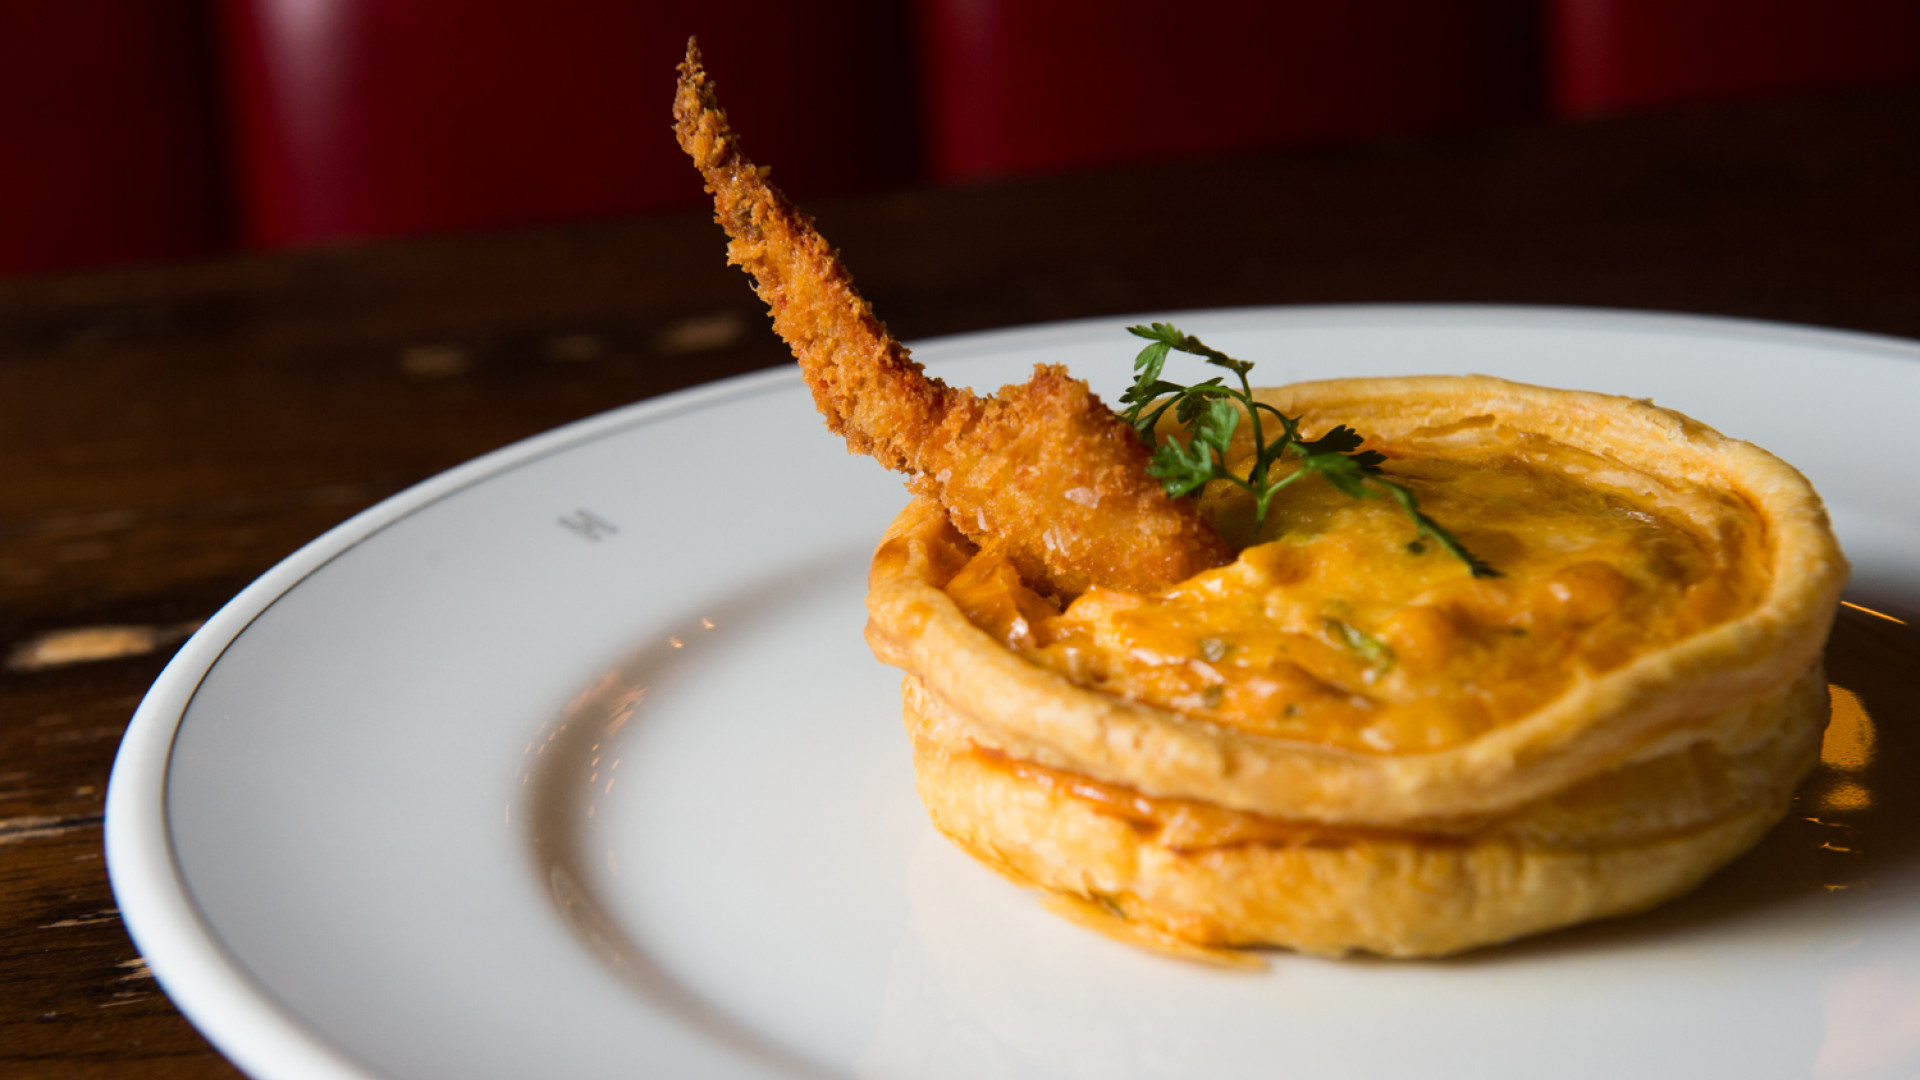 The lobster thermidor tart from Holborn Dining Room